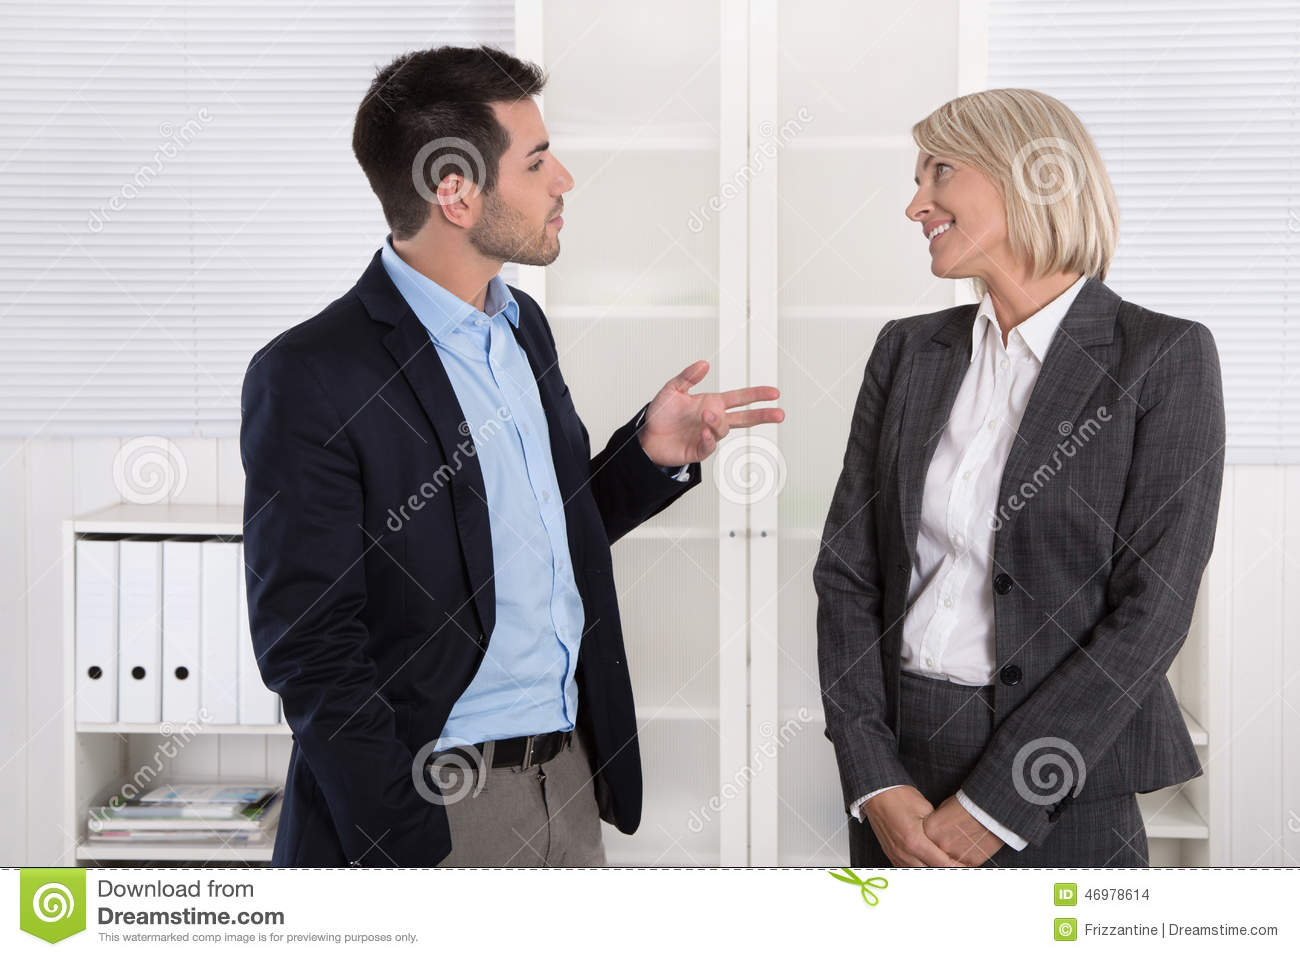 Business People In Suit And Dress Talking Together Small